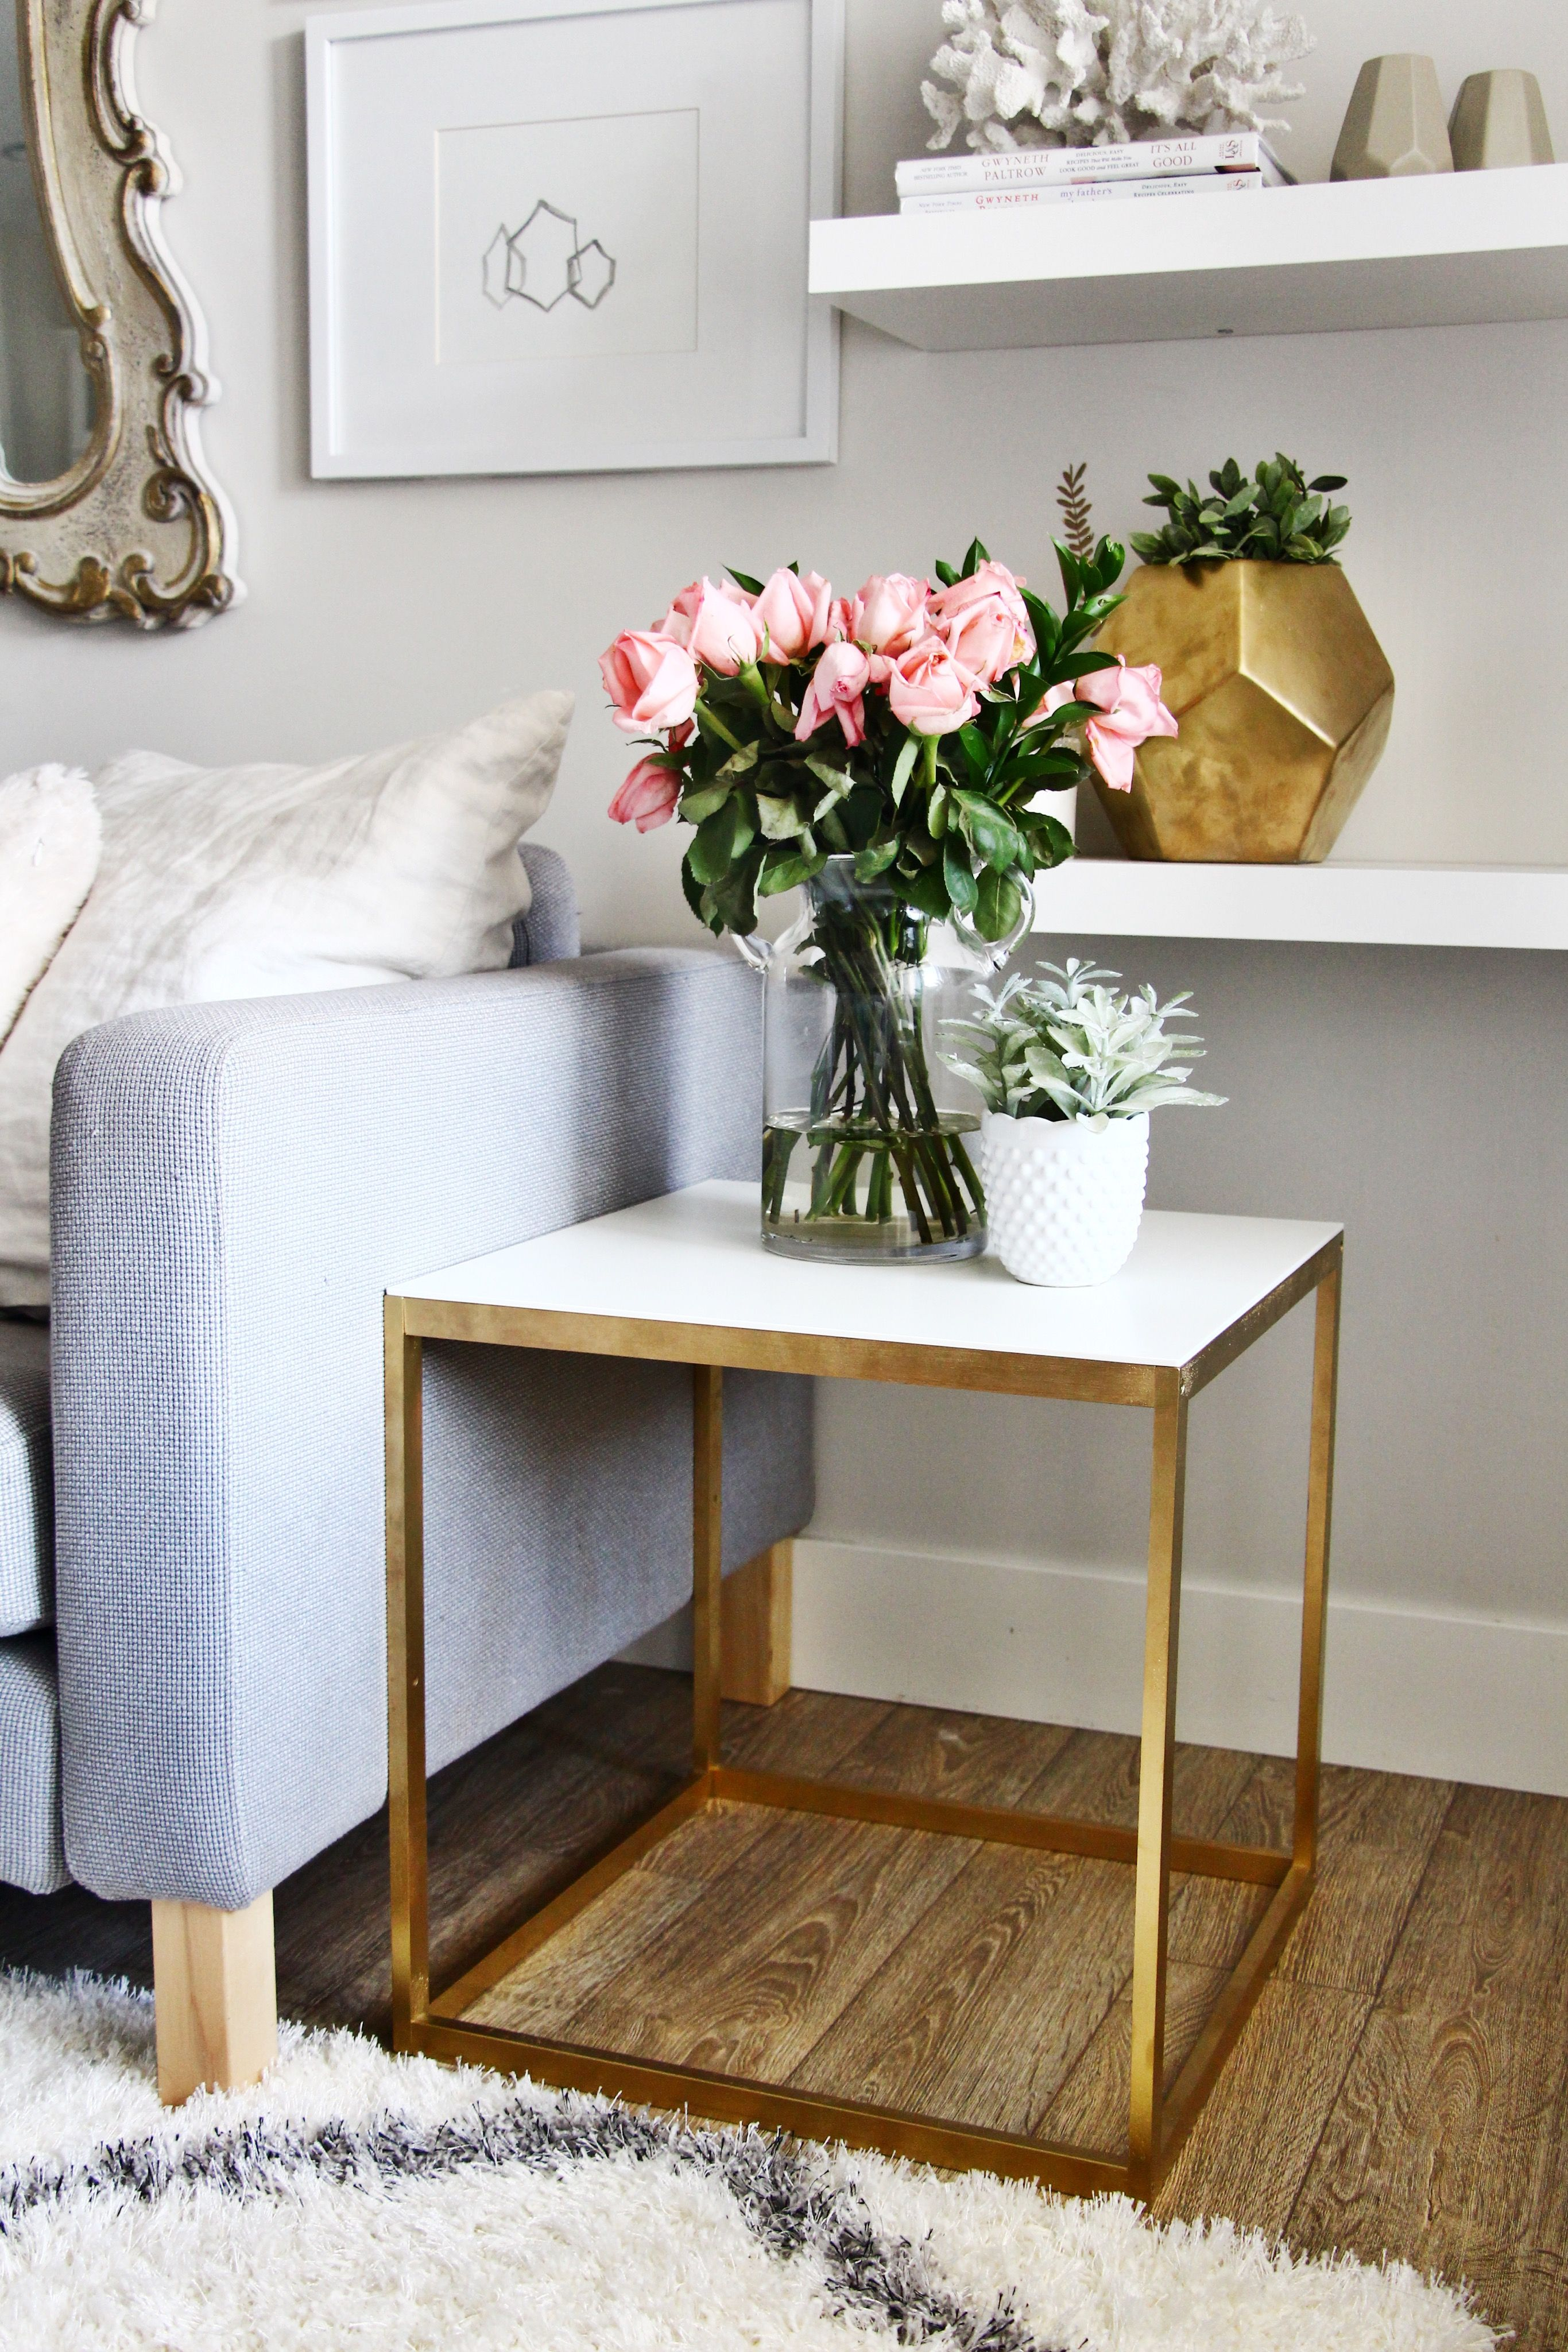 Side Tables Living Room Small With Dining Table Pin By Katie Bain On Home Is Where The Heart In 2019 Decor Cozy Office Space To Meet Clients Soft Feminine And Inviting From Ikea Painted Gold White Flawless 33 Incredible Modern